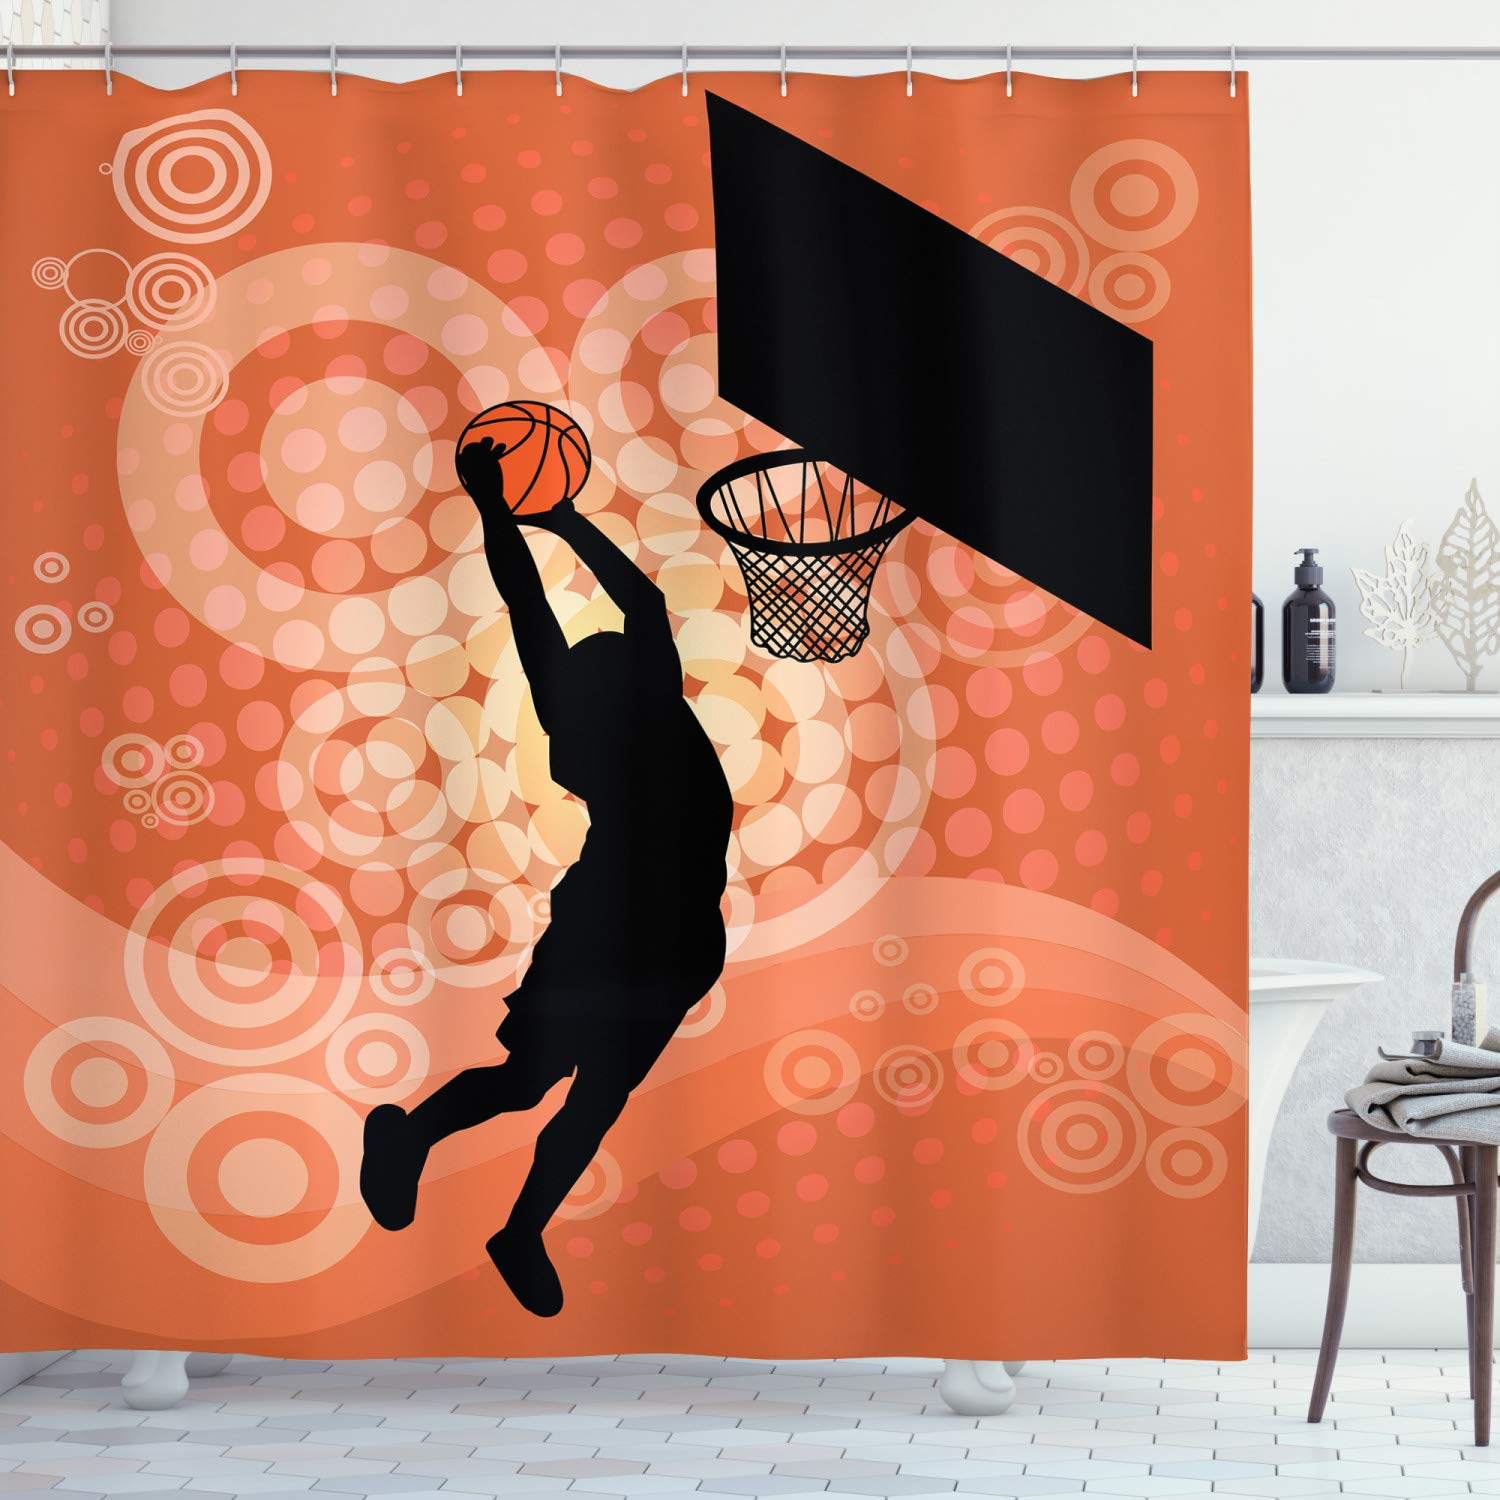 """Ambesonne Basketball Shower Curtain, Basketball Player Silhouette Athlete Competition Championship, Cloth Fabric Bathroom Decor Set with Hooks, 70"""" Long, Orange Black"""